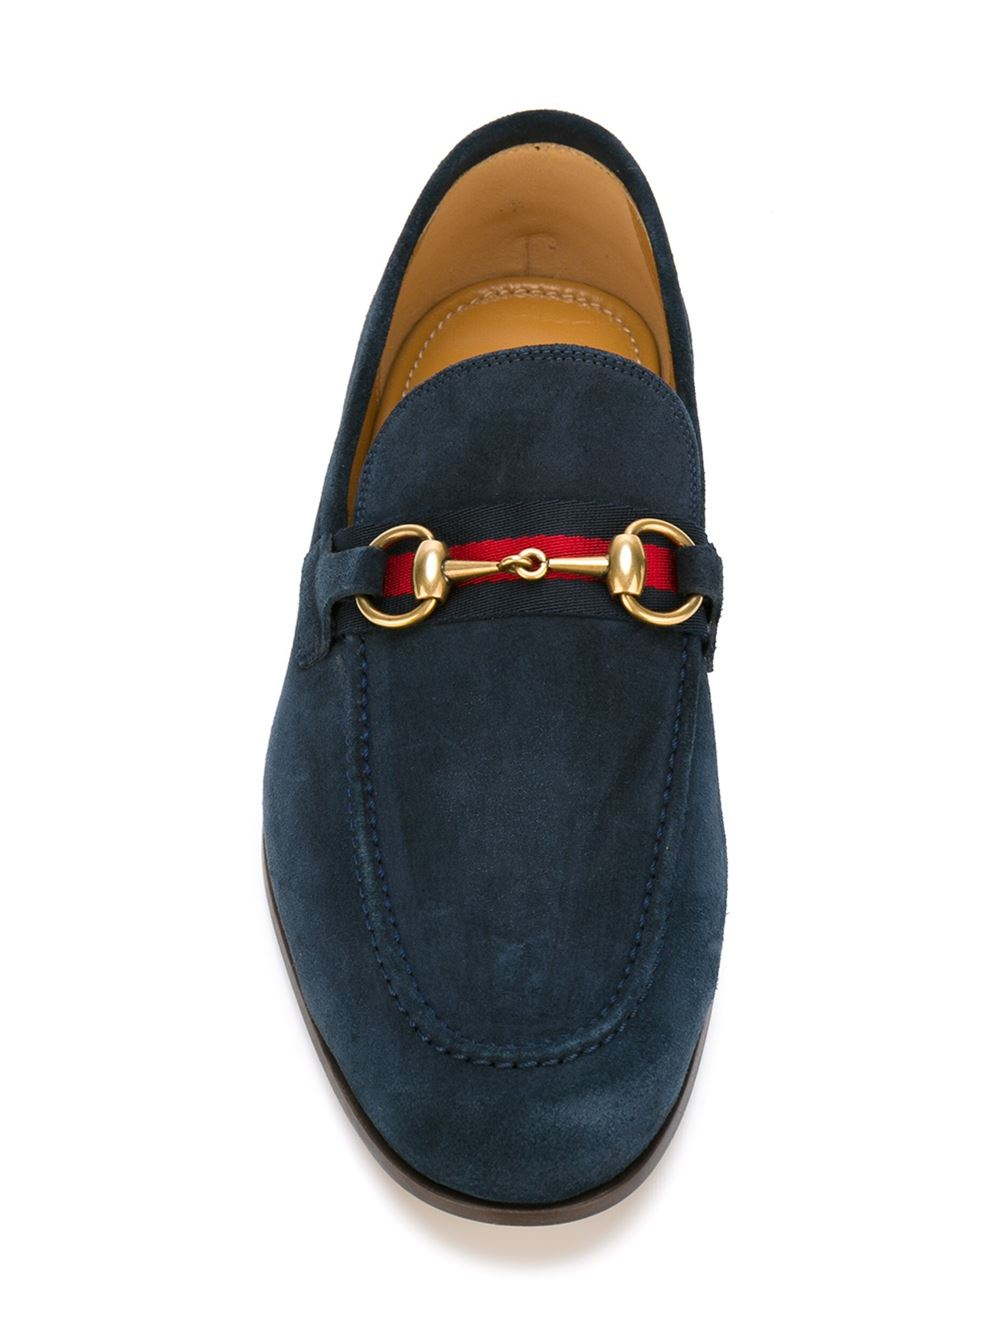 1040b6280 Gucci Suede Loafers in Blue for Men - Lyst